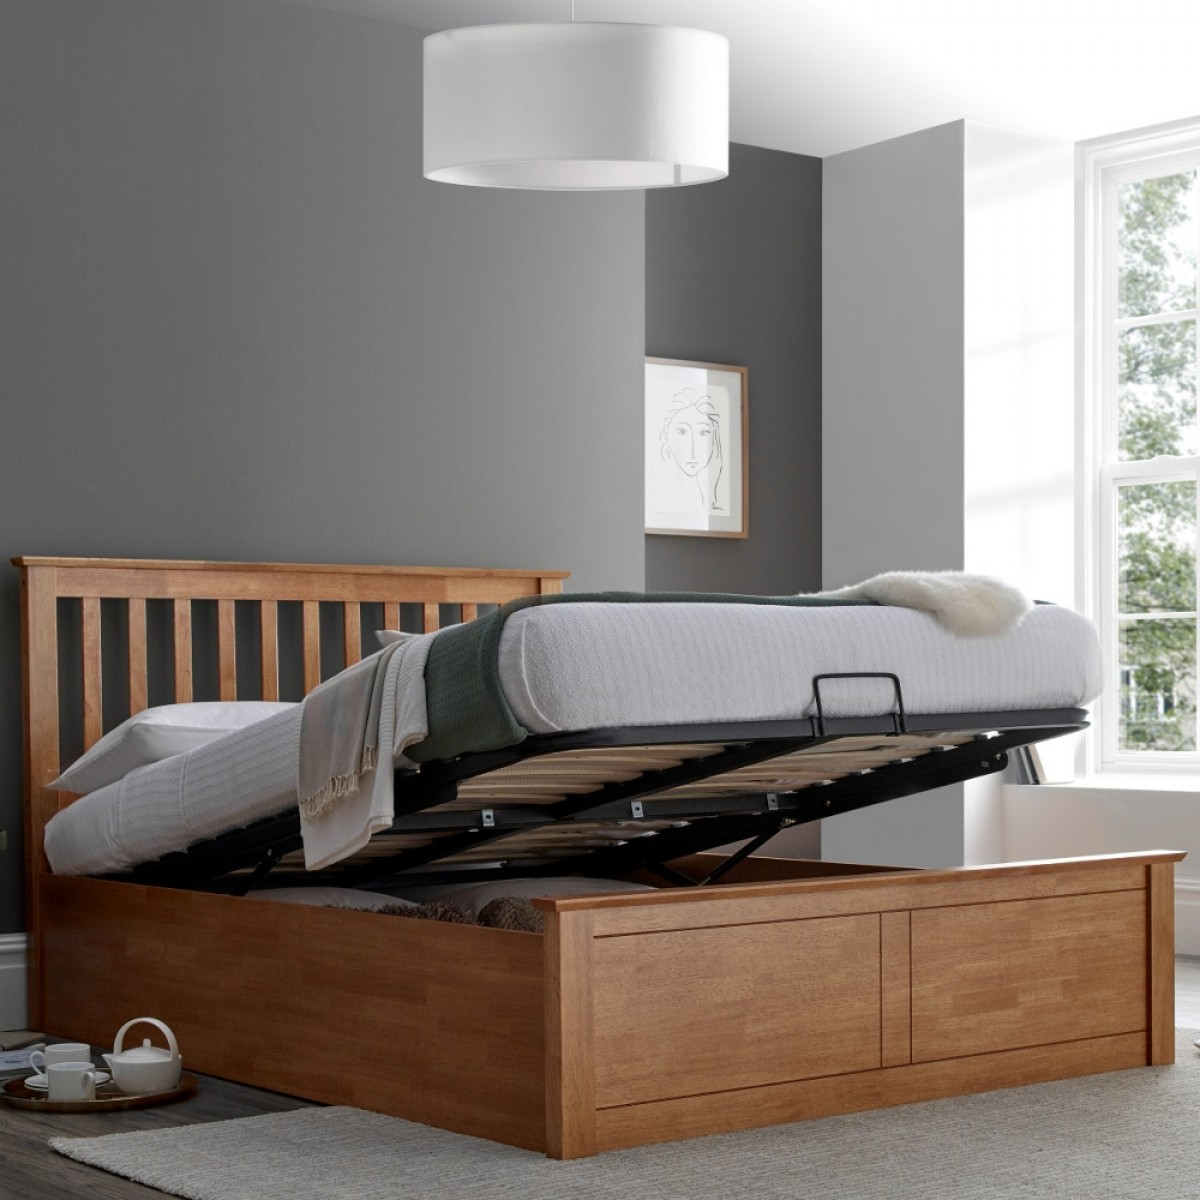 Stupendous Malmo Oak Wooden Ottoman Bed Lamtechconsult Wood Chair Design Ideas Lamtechconsultcom